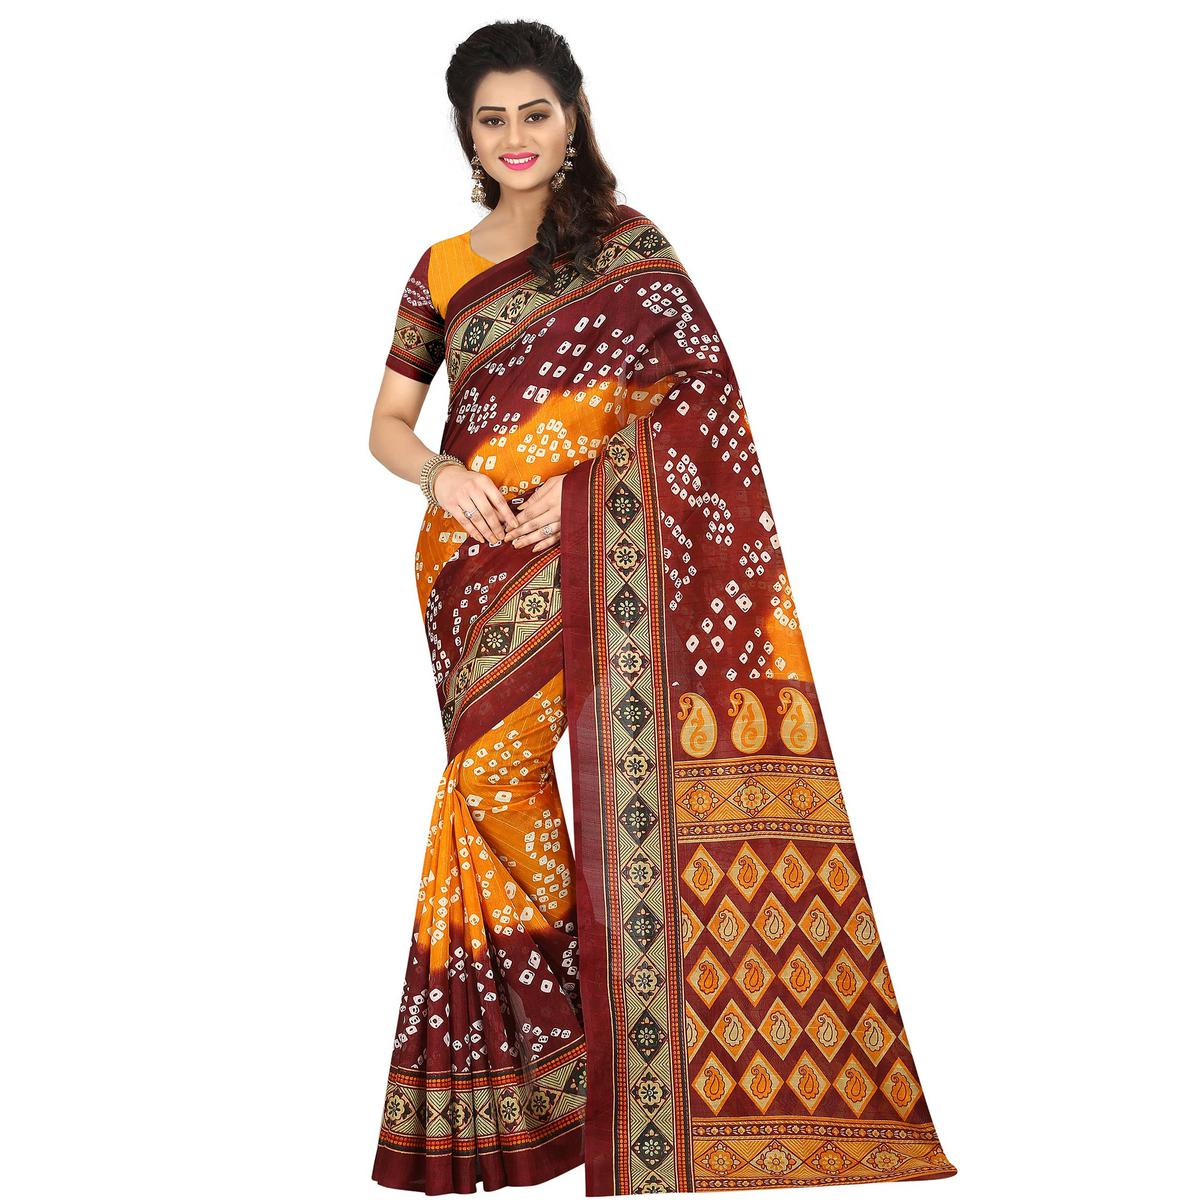 Attractive Maroon - yellow Colored Casual Wear Printed Bhagalpuri Silk Saree